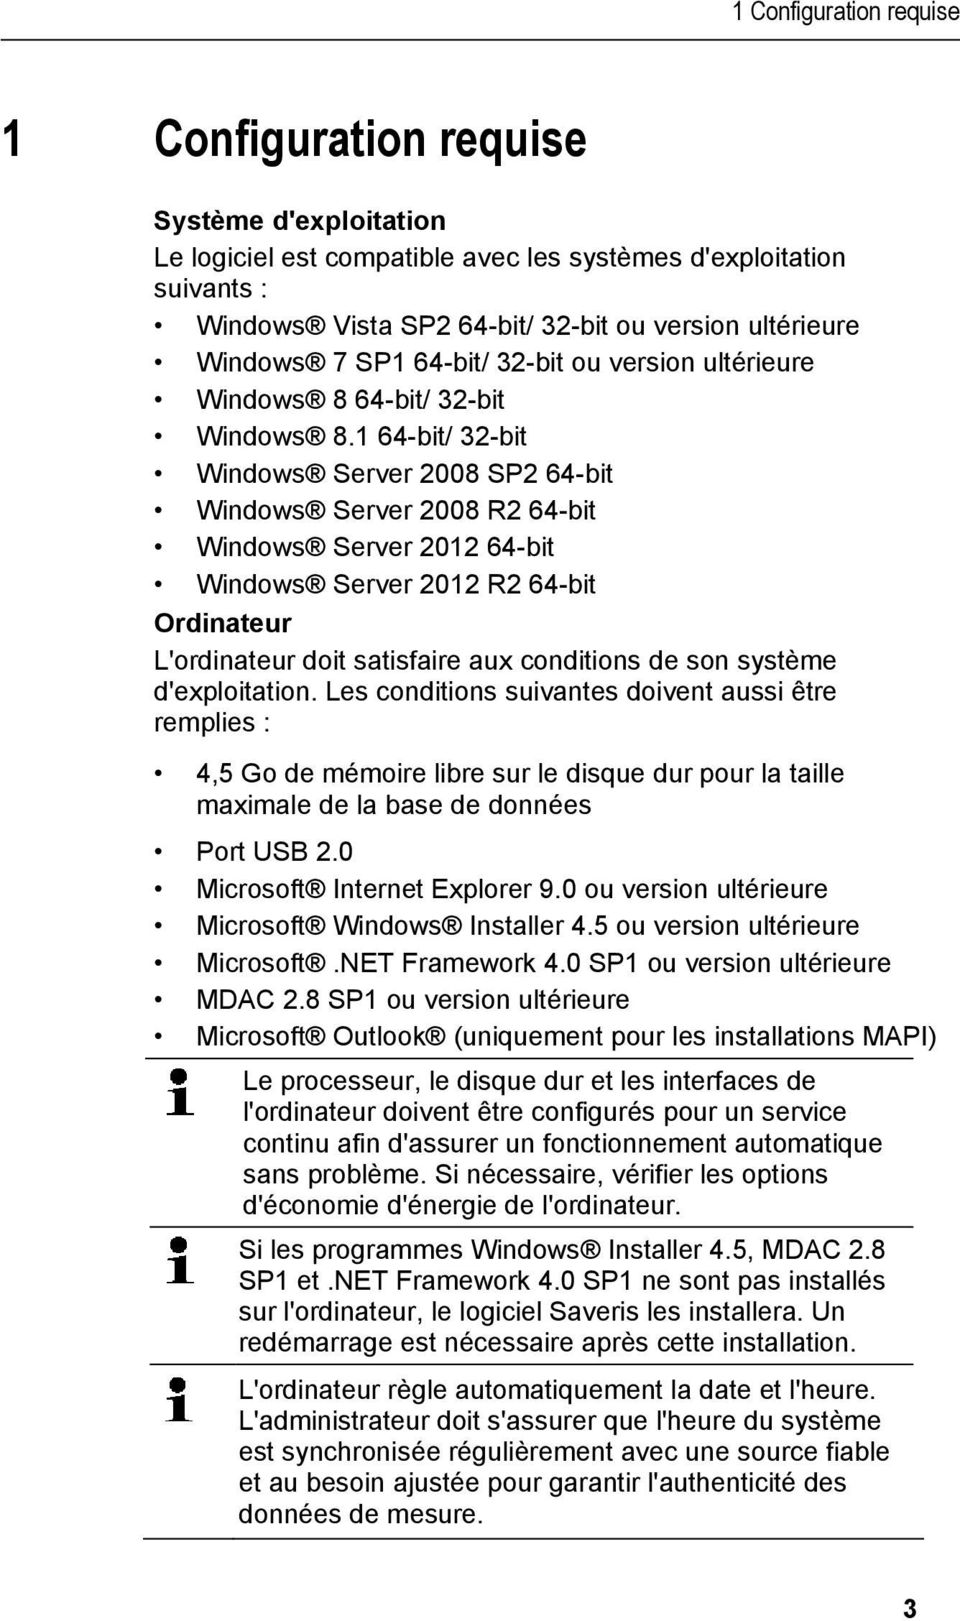 1 64-bit/ 32-bit Windows Server 2008 SP2 64-bit Windows Server 2008 R2 64-bit Windows Server 2012 64-bit Windows Server 2012 R2 64-bit Ordinateur L'ordinateur doit satisfaire aux conditions de son